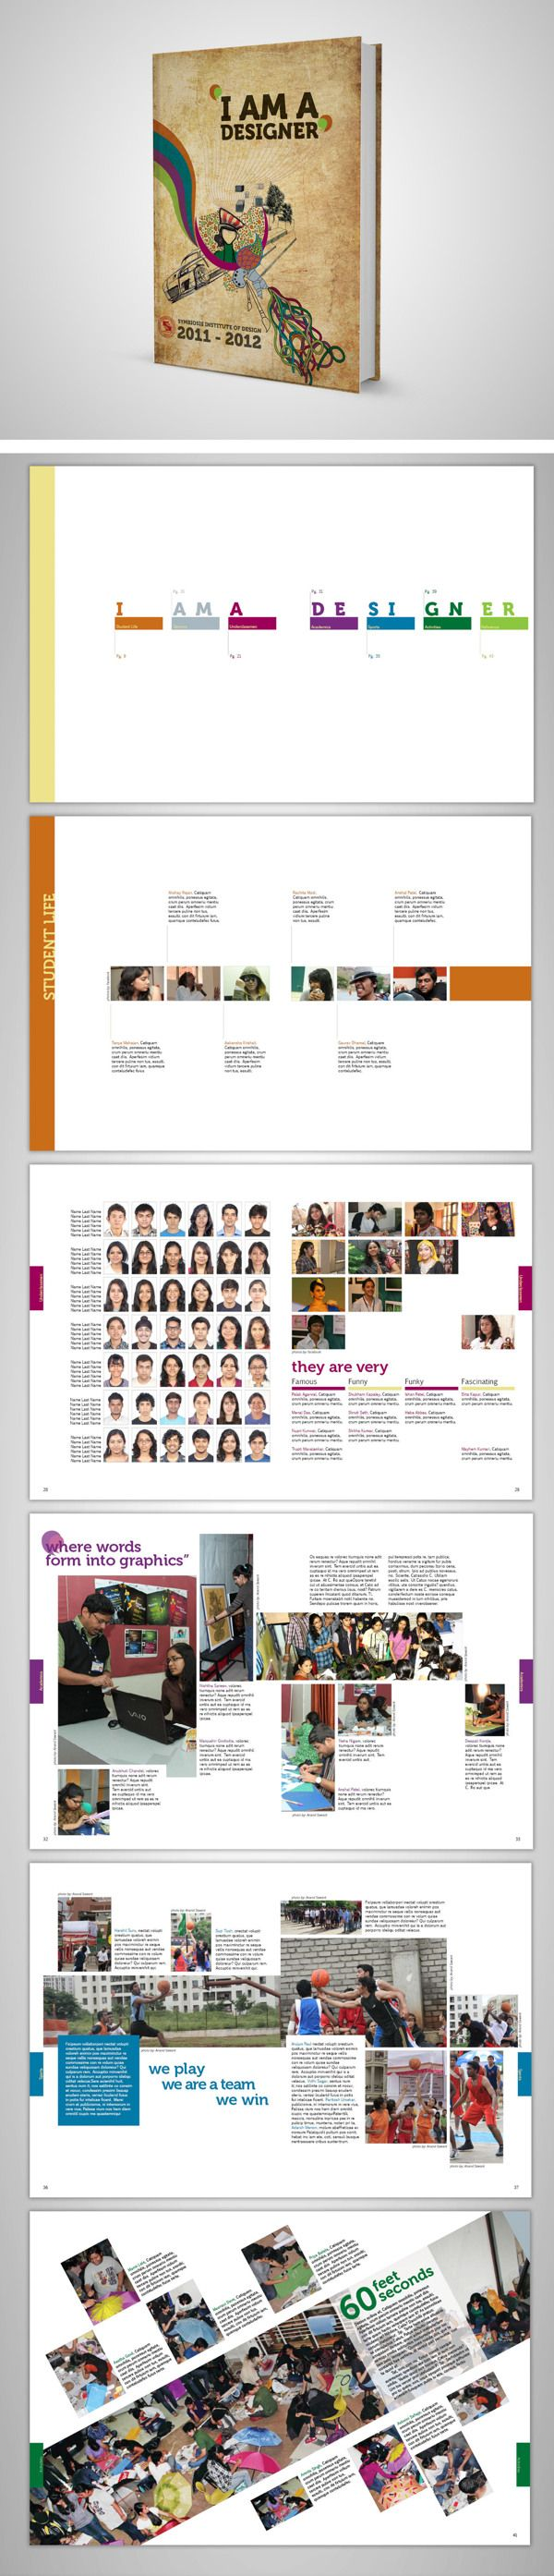 Symbiosis Institute of Design - Yearbook 2012 by Anshal Patel, via Behance